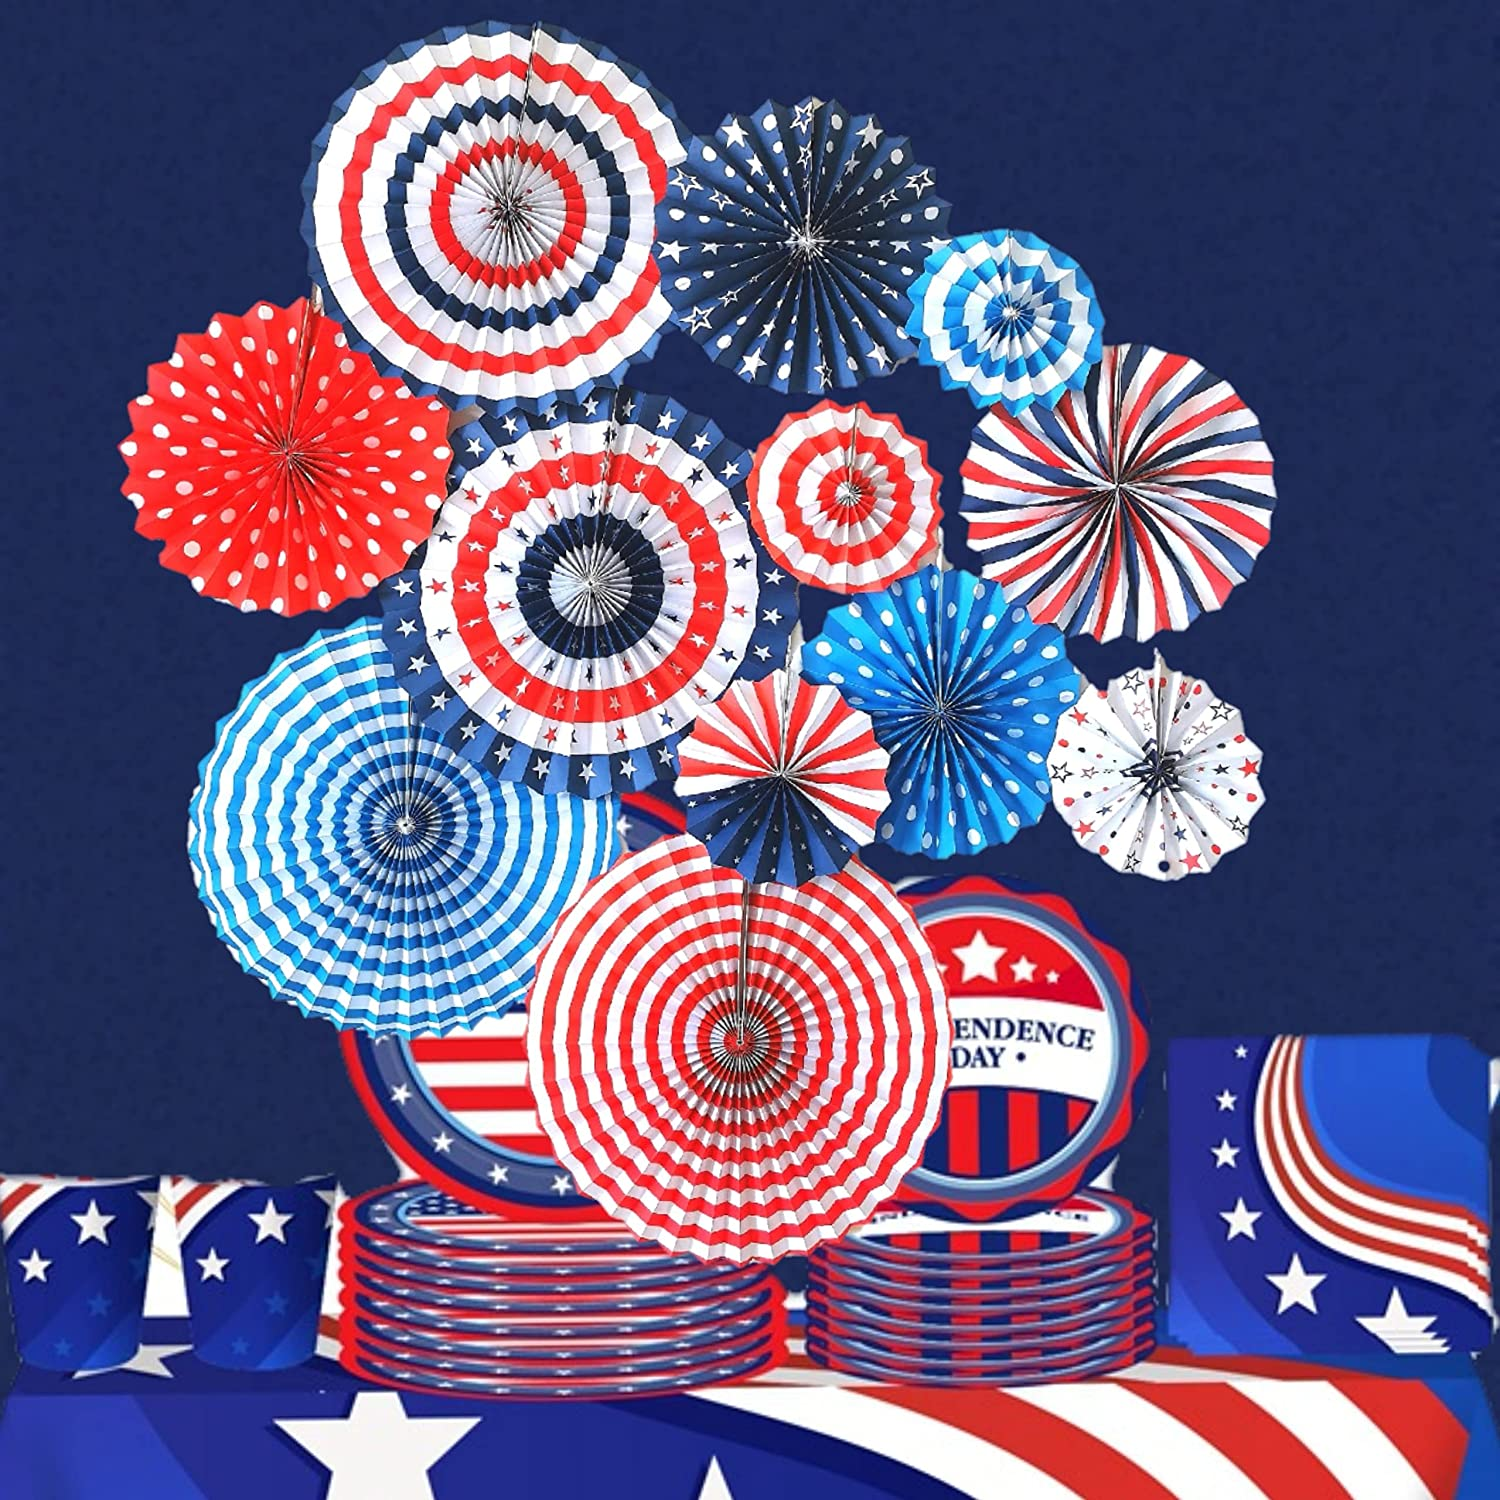 4th of July Decorations 12PCS Paper Fans for USA Patriotic Decorations, USA American Flag Red White Blue Ornament Party Decor Supplies for Memorial Day, Independence Day Veterans Birthday Party Supplies